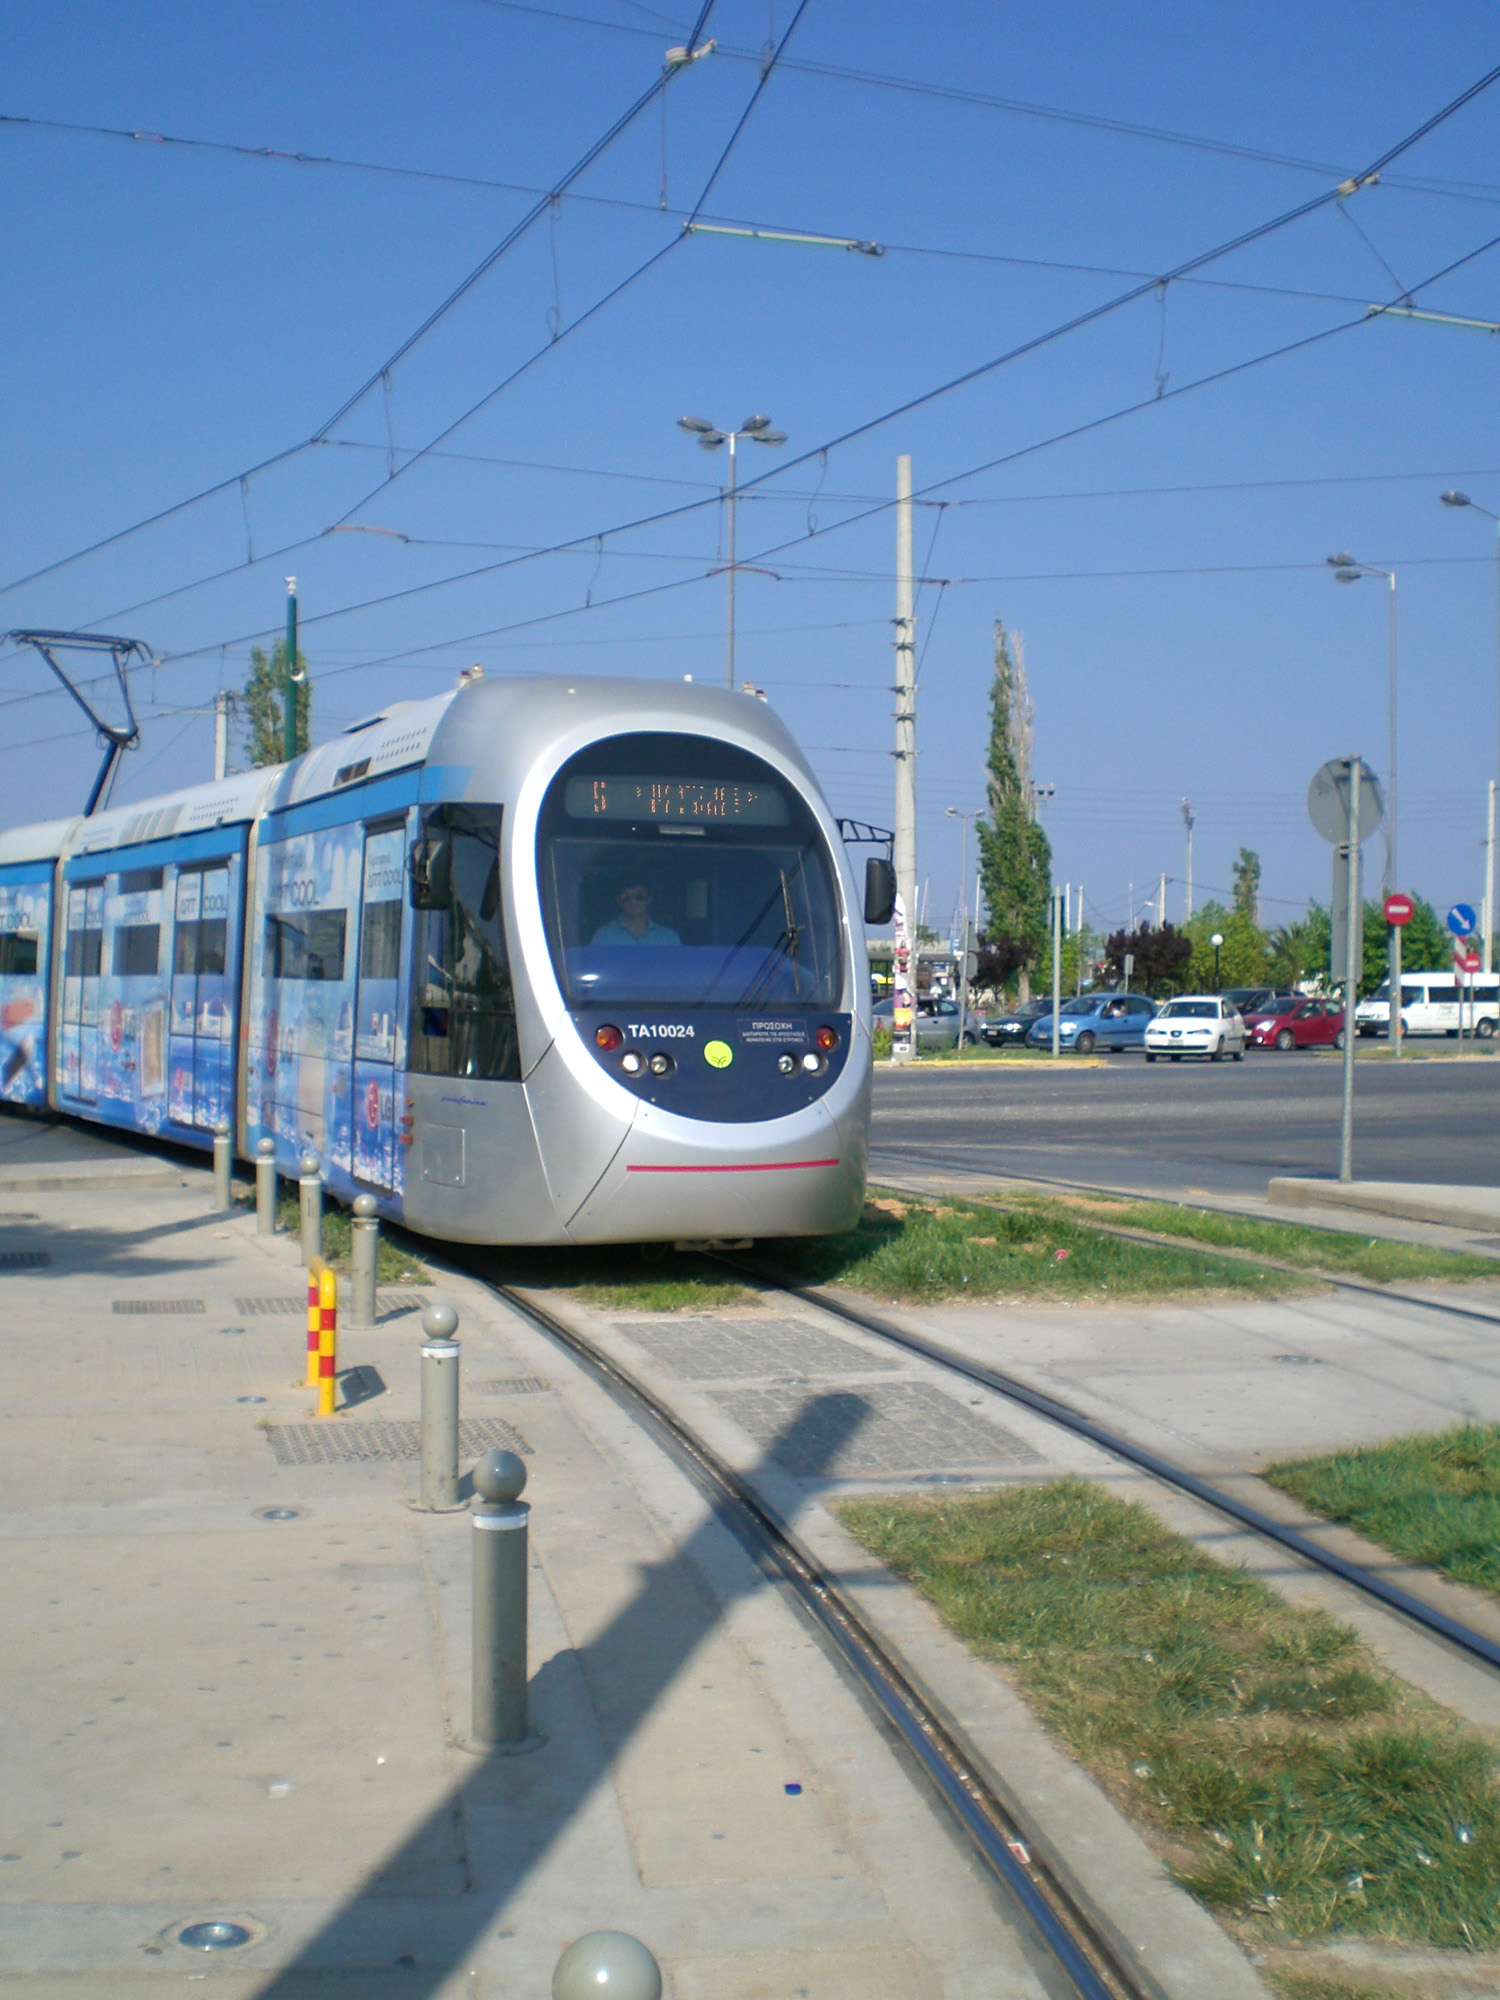 A tram en route to Glyfada